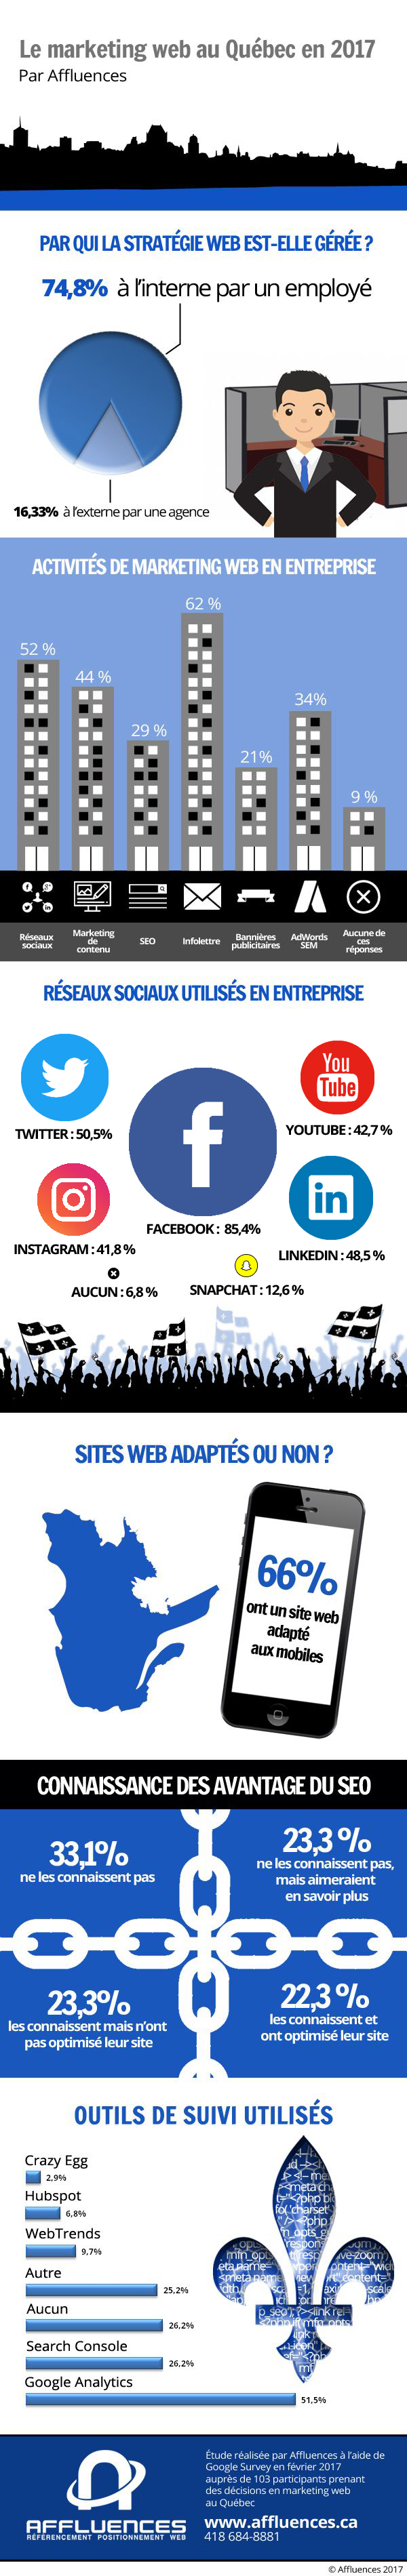 infographie-marketing-web-québec-2017